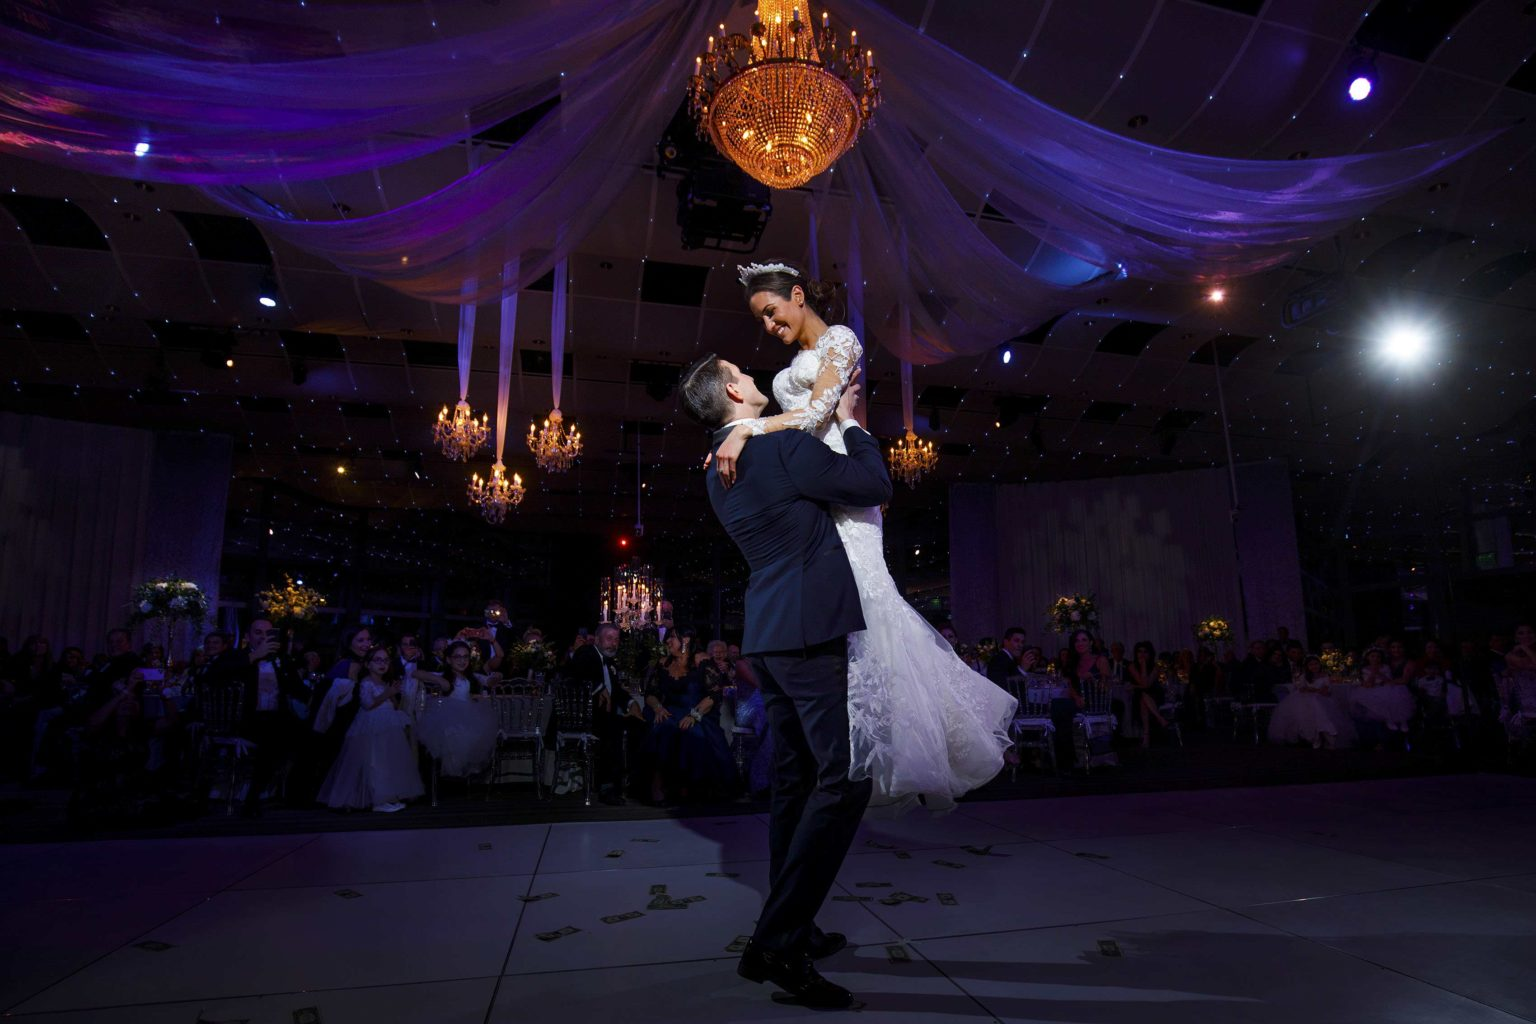 Alex lifts Ioanna on the dance loor during their colorful greek wedding in Denver at the Seawell Ballroom